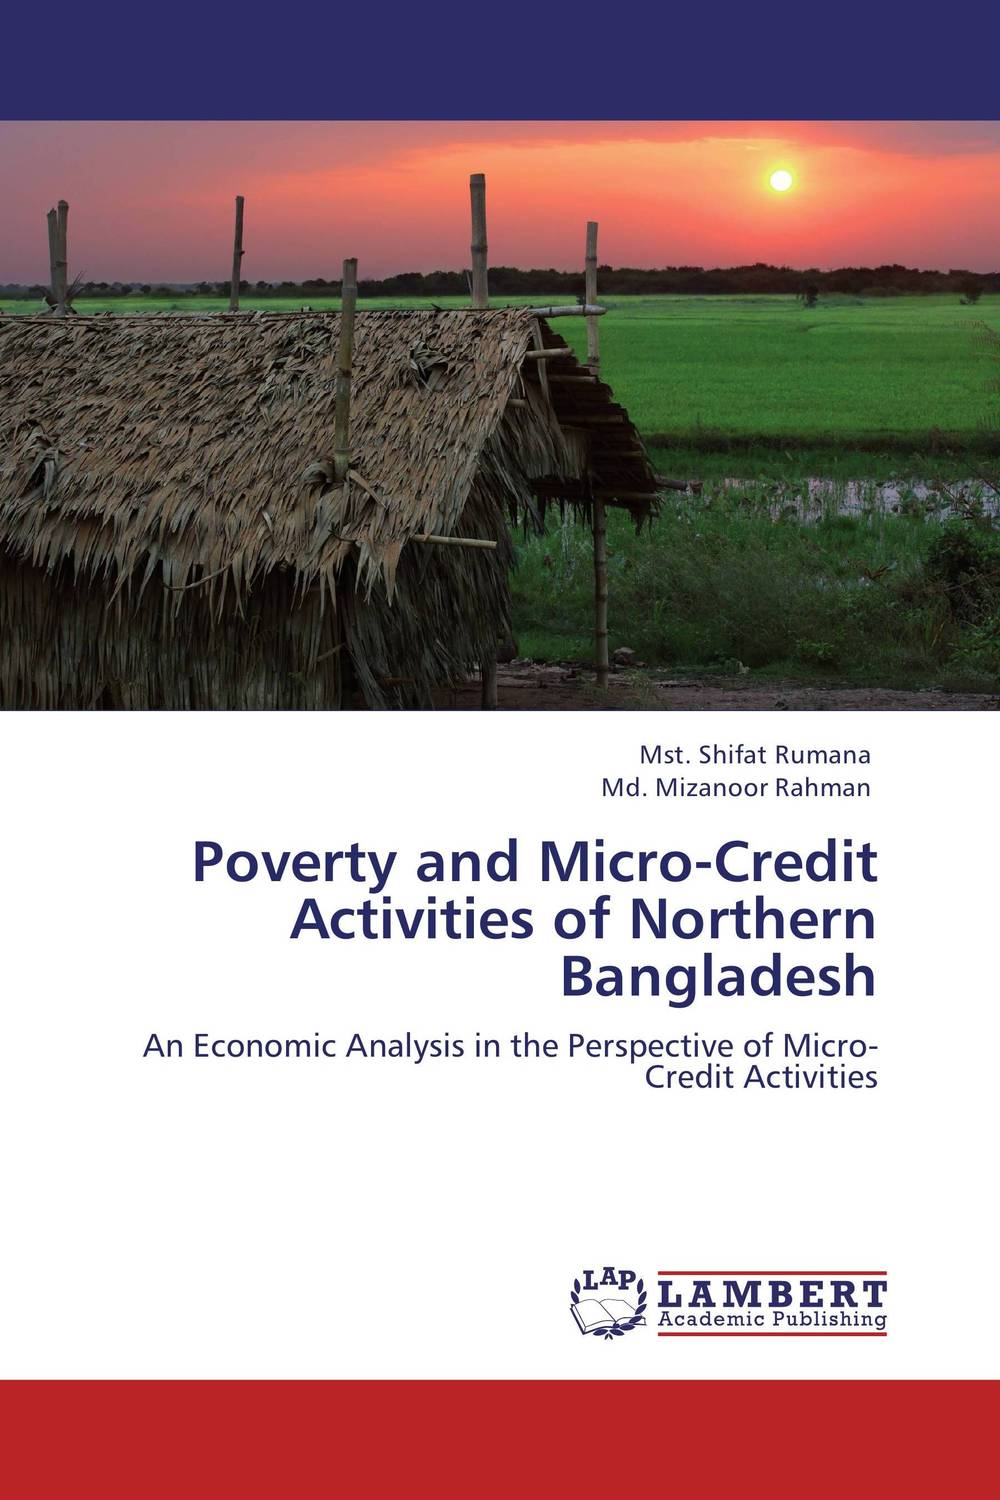 Фото Poverty and Micro-Credit Activities of Northern Bangladesh micro credit for social development case study on a ngo in bangladesh